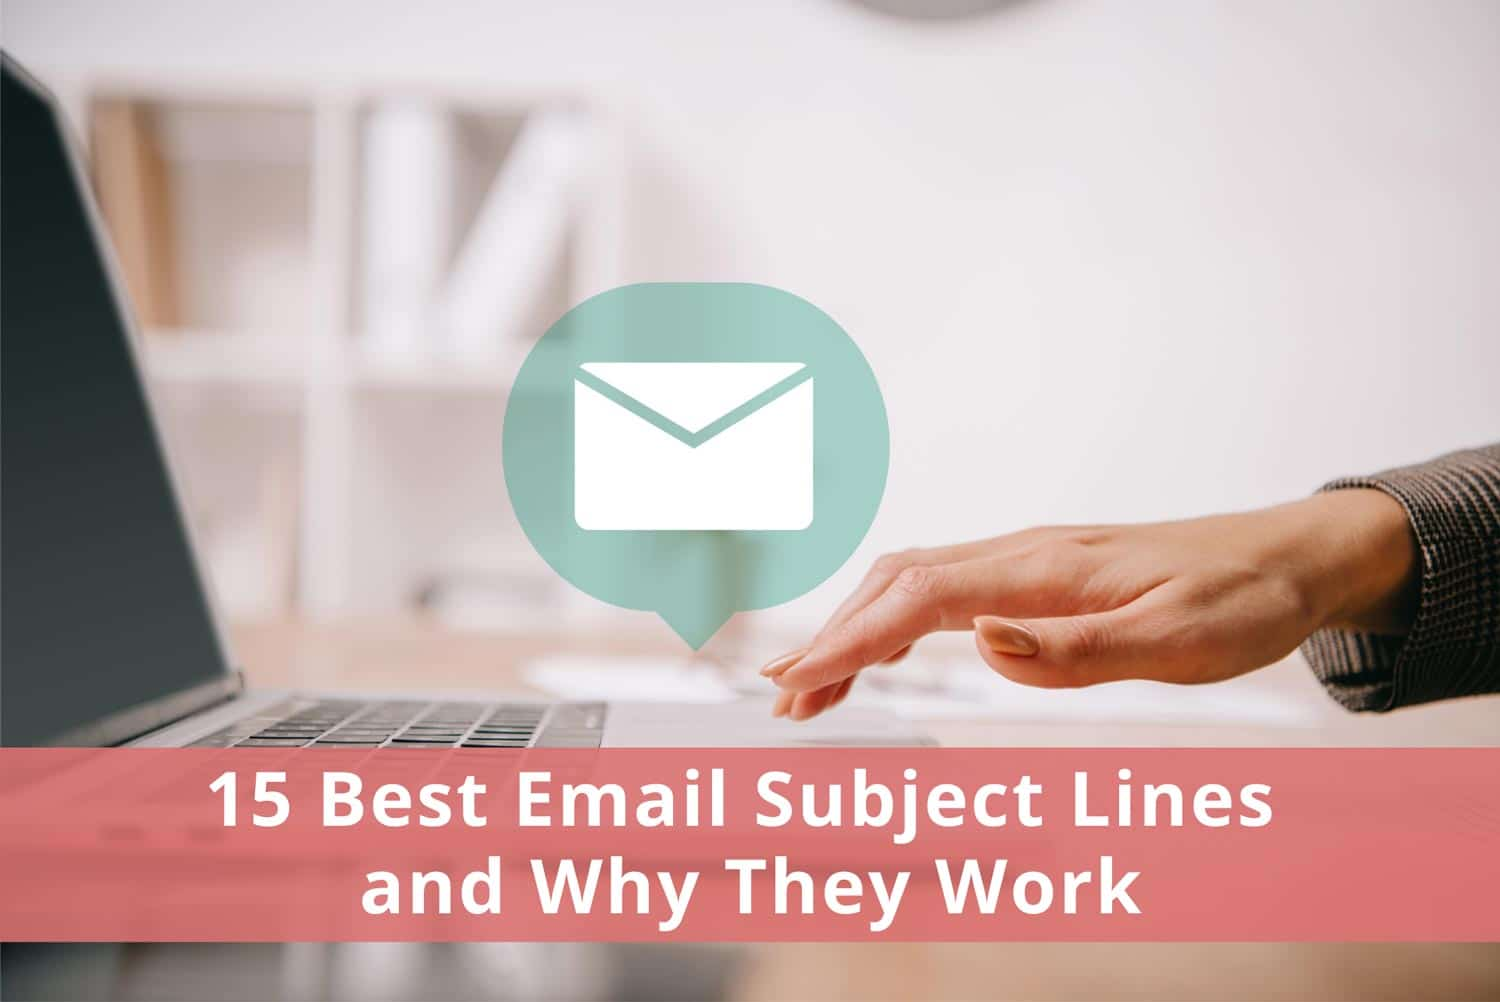 15 Best Email Subject Lines and Why They Work